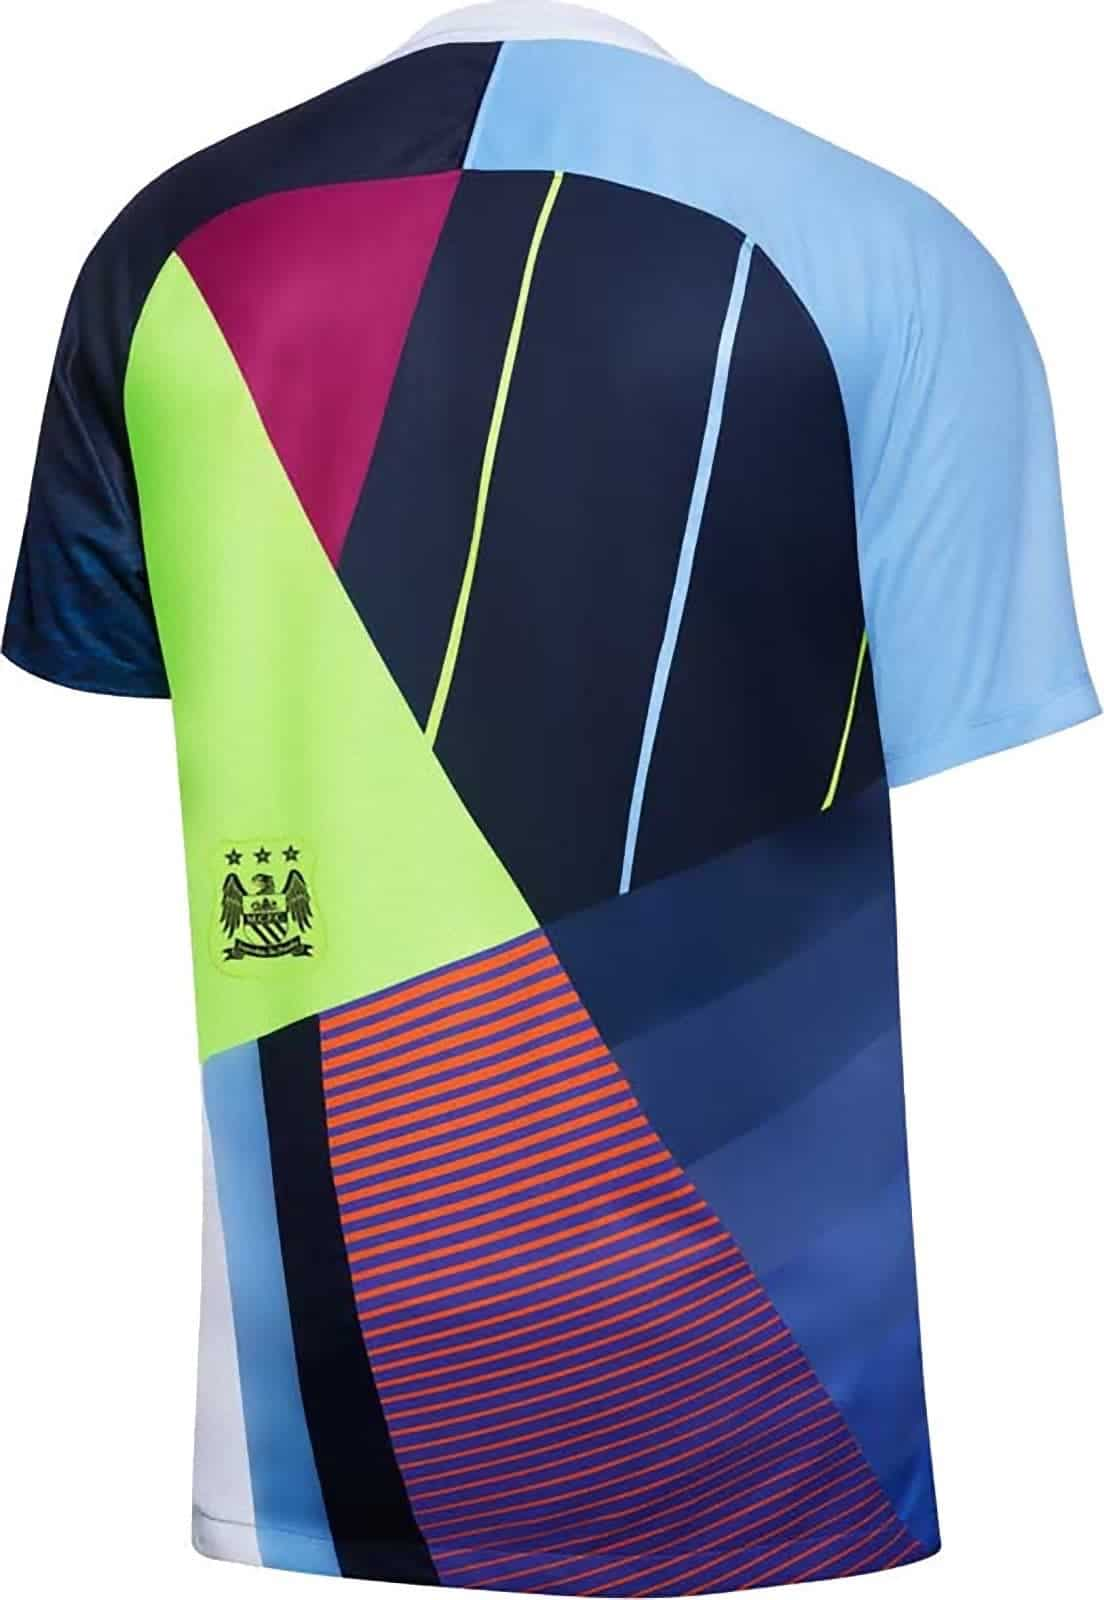 ea3cb830bf2 The Manchester City Celebration Mashup Shirt 2019 will be worn this weekend  pre match against Fulham and for the remaining fixtures as the players warm  up ...